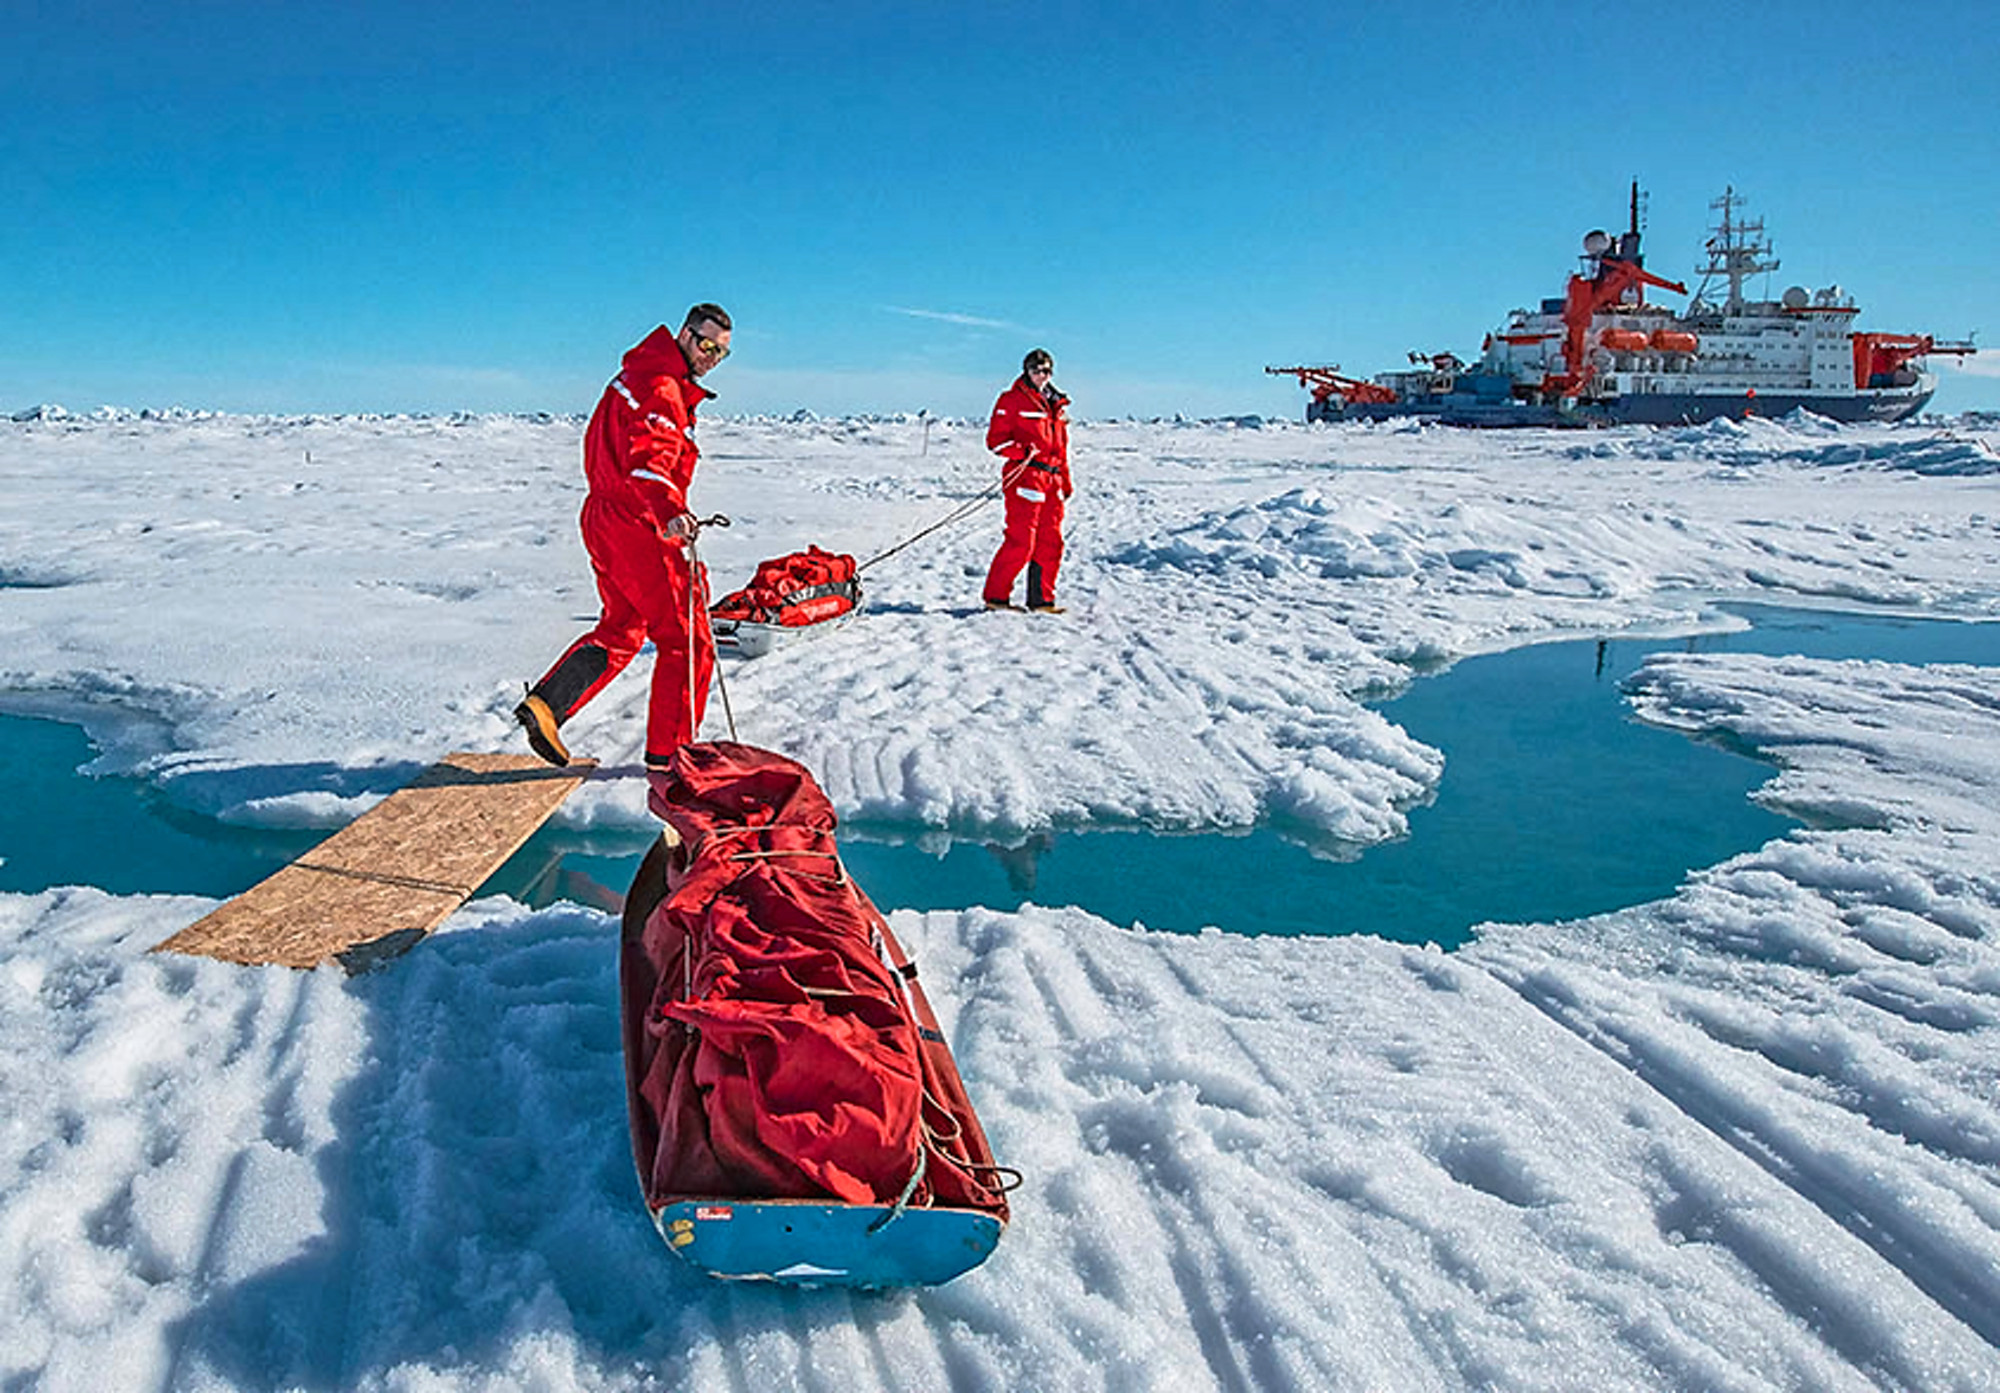 While the MOSAiC floe slowly thawed, the melting ponds became larger and the work on the ice increasingly difficult. Photo: Lianna Nixon, University of Colorado